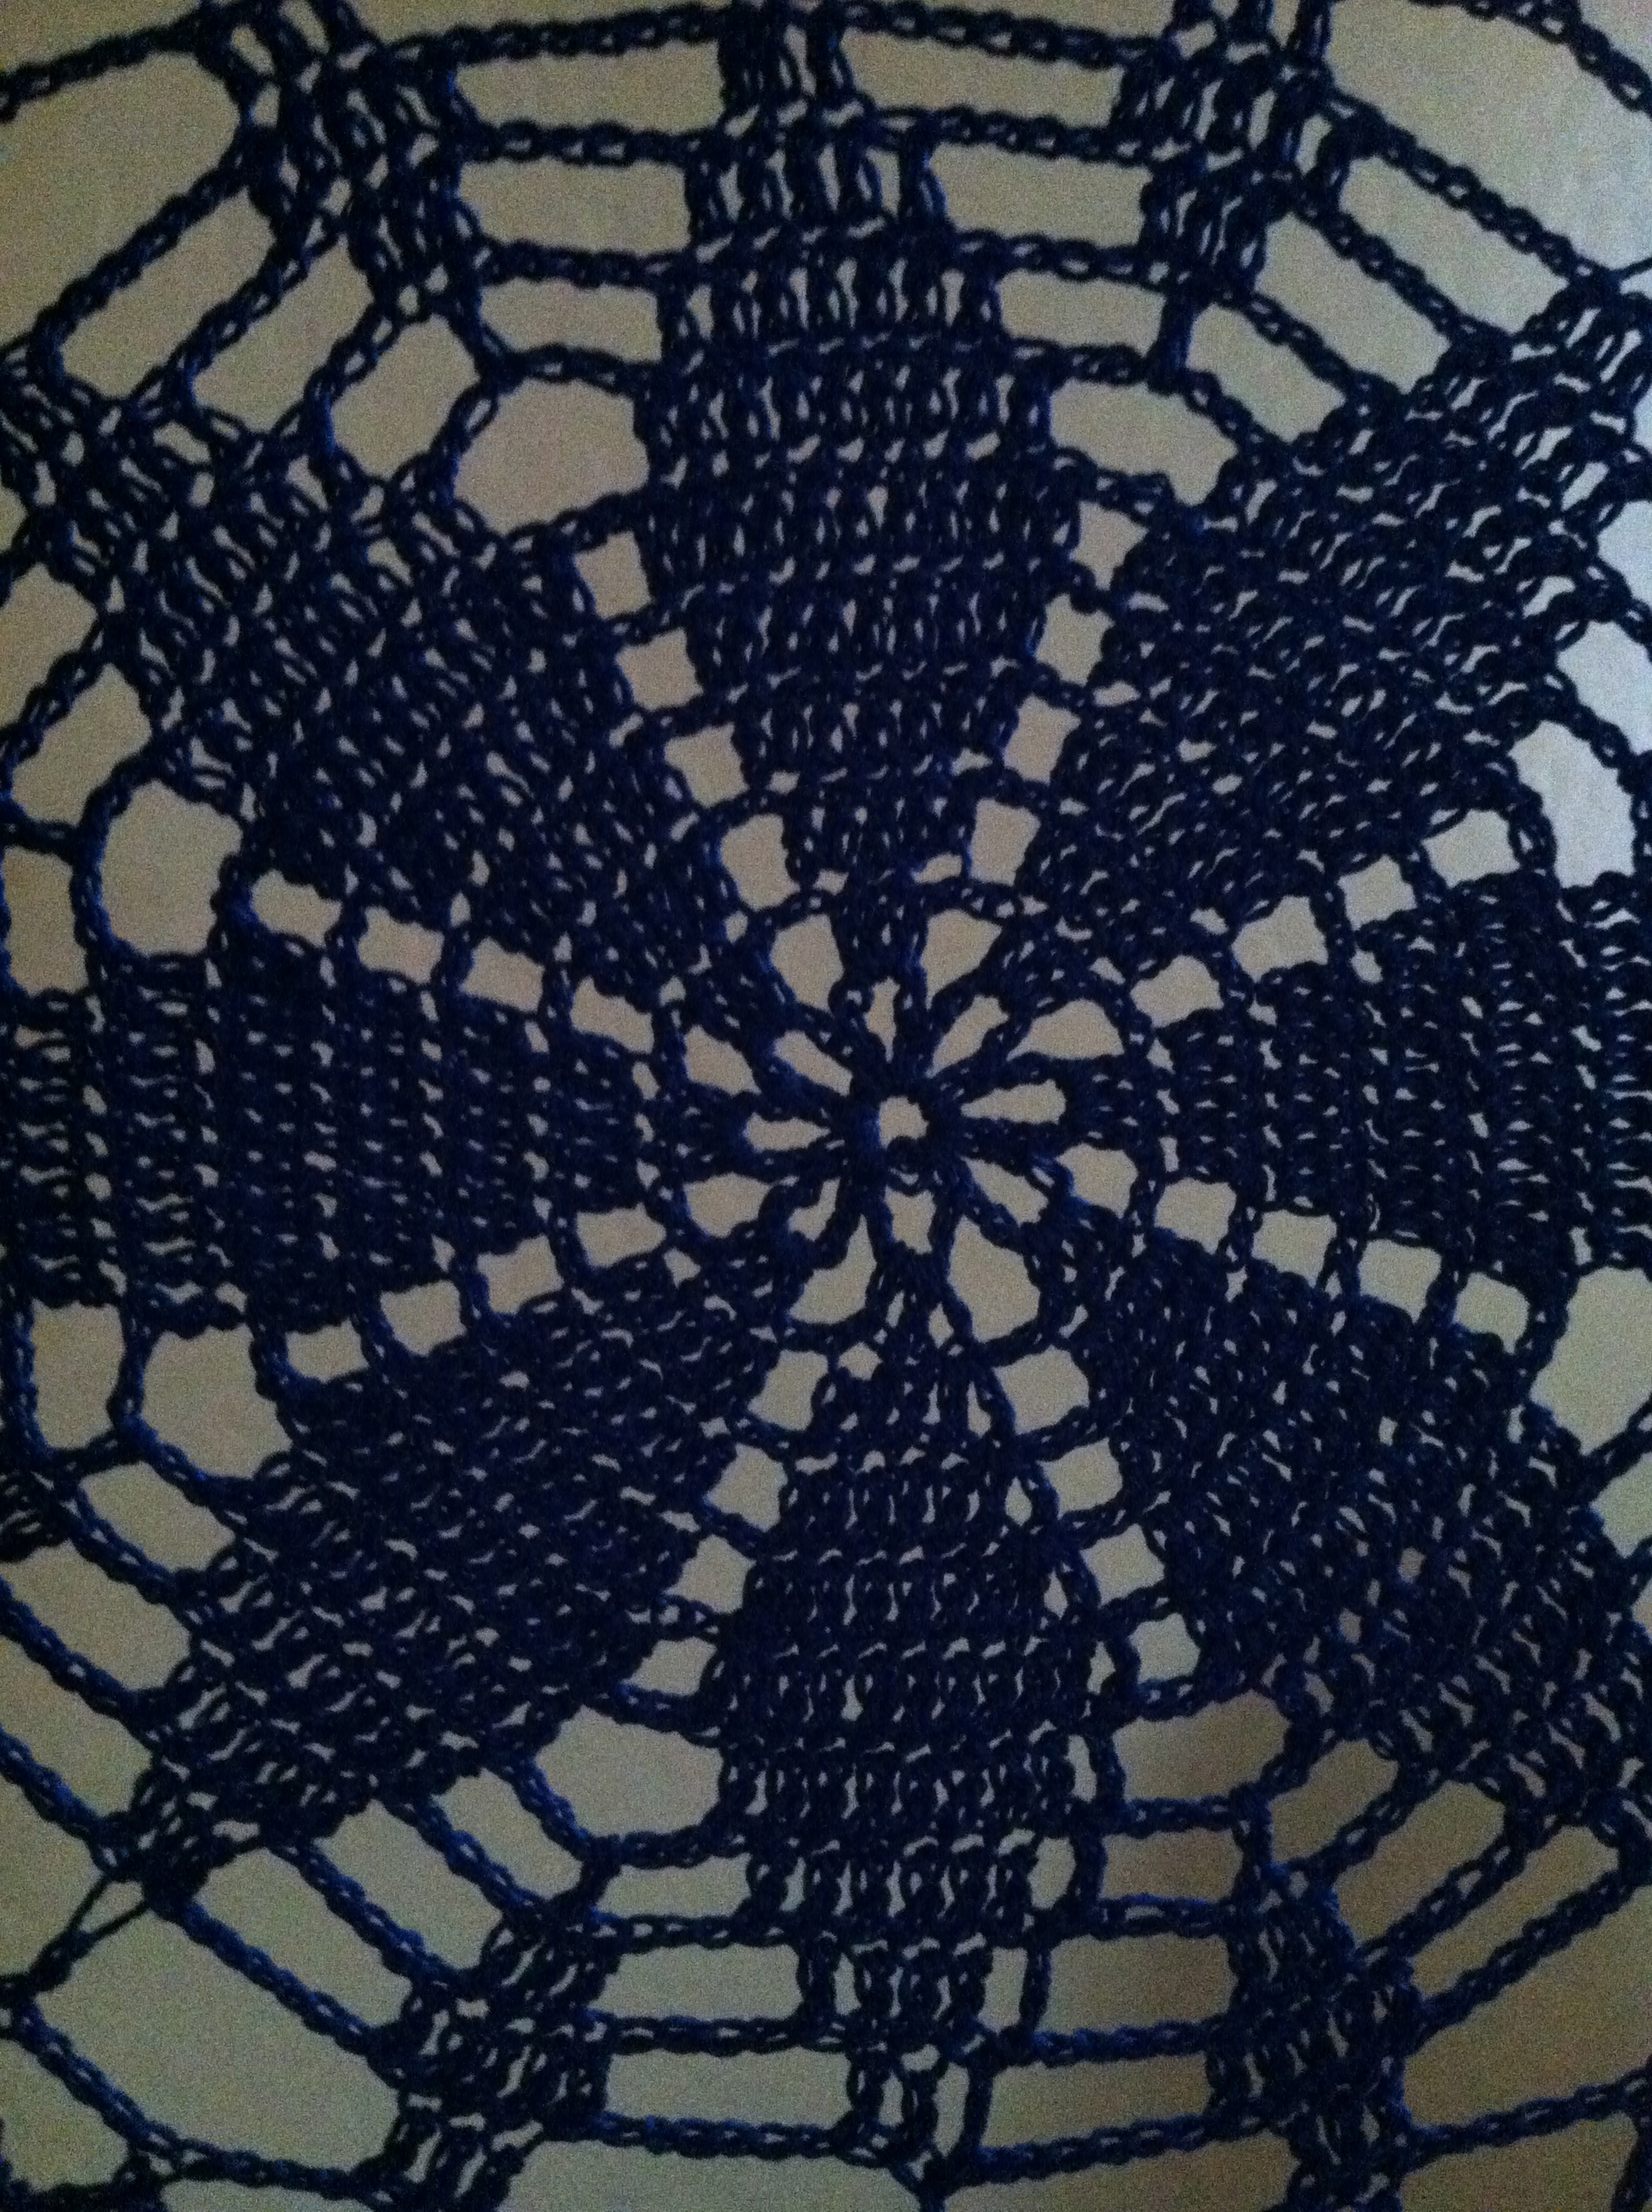 blue crocheted hanging